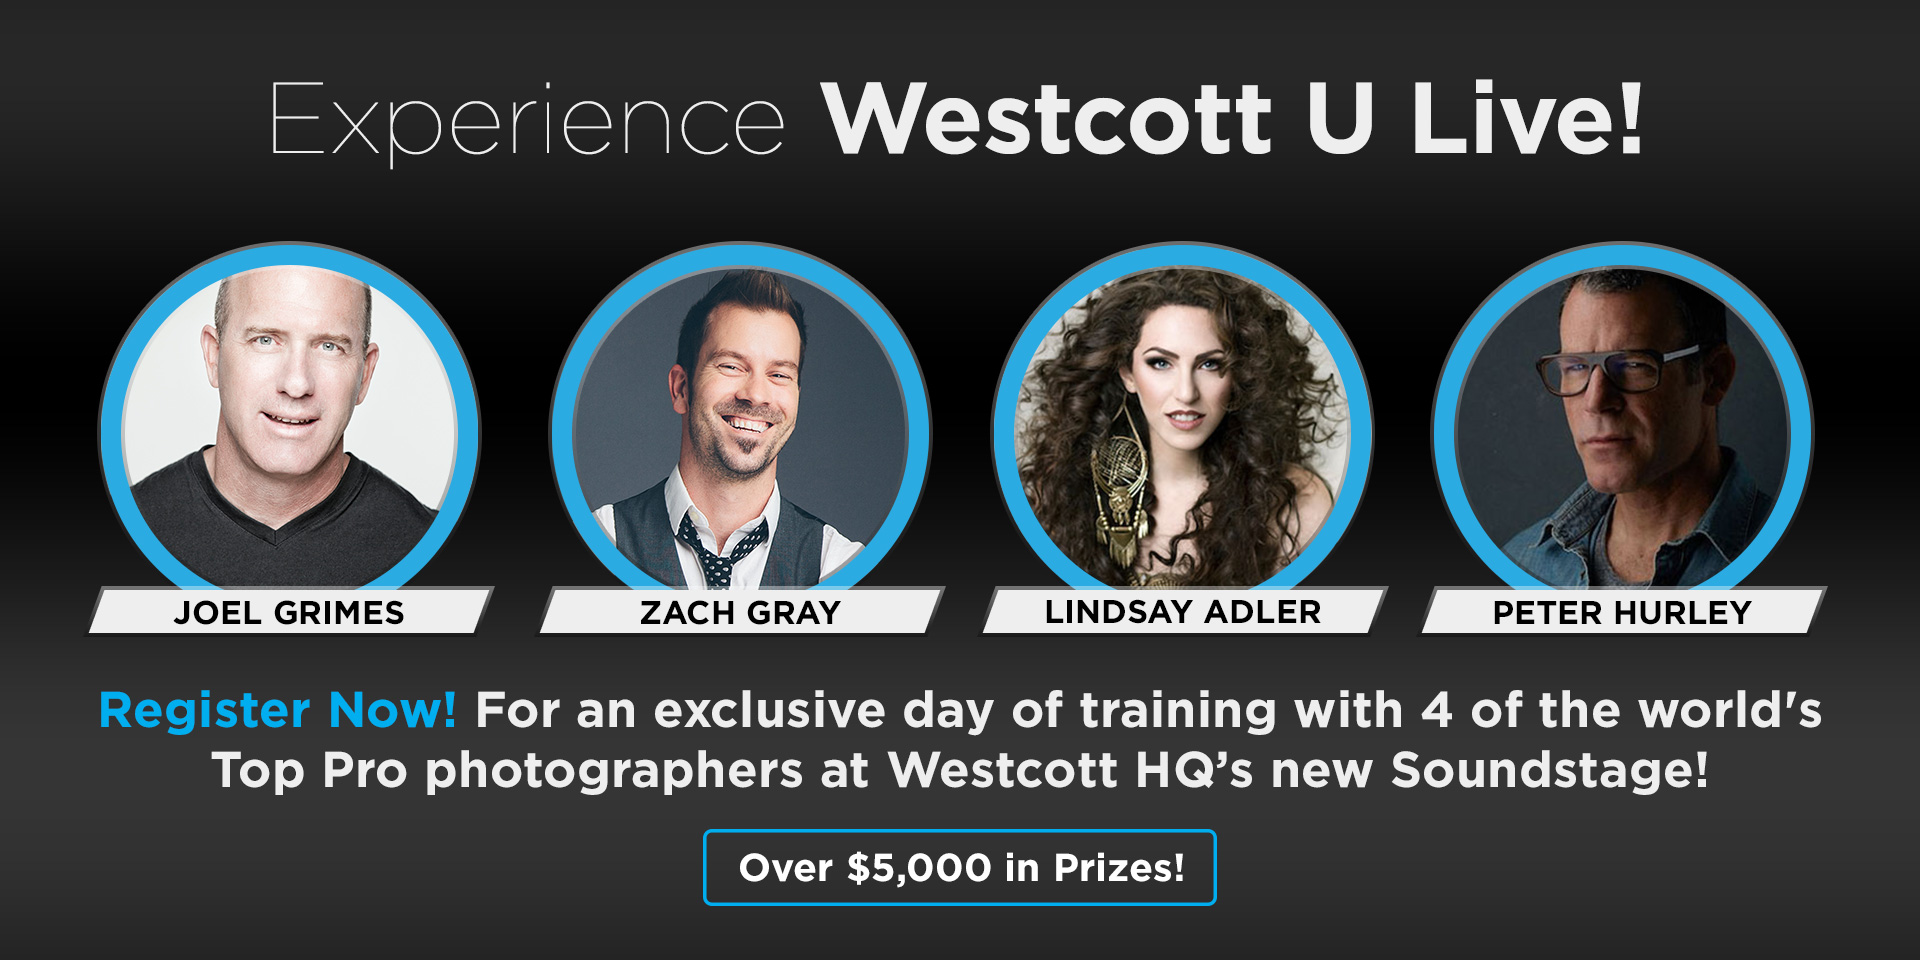 Exclusive live training with 4 Top Pro photographers at the new Westcott Soundstage